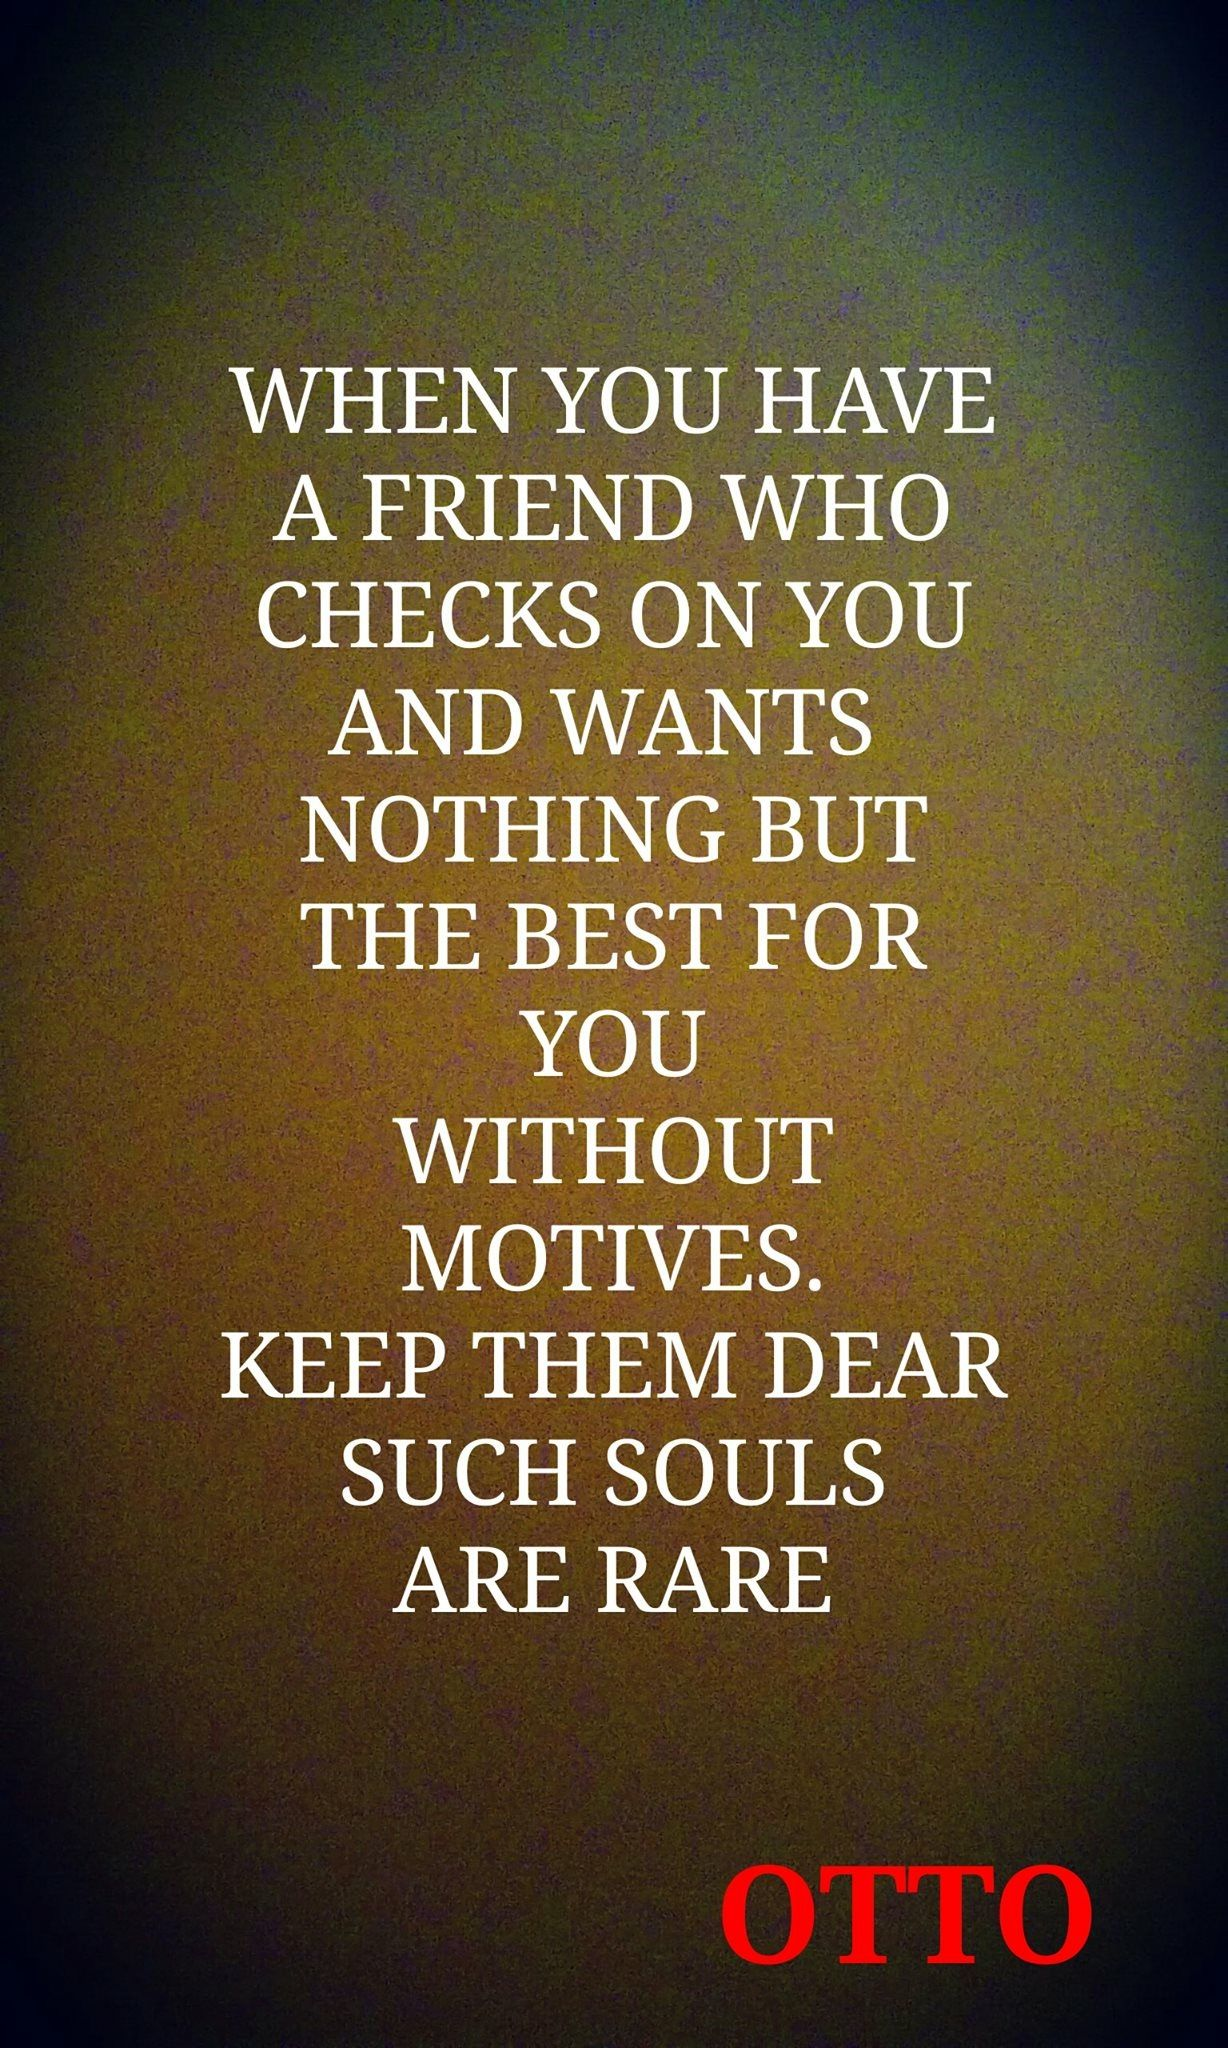 Pin By Tiara Williams On Inspirational Words Supportive Friends Quotes Friends Quotes Best Friend Quotes